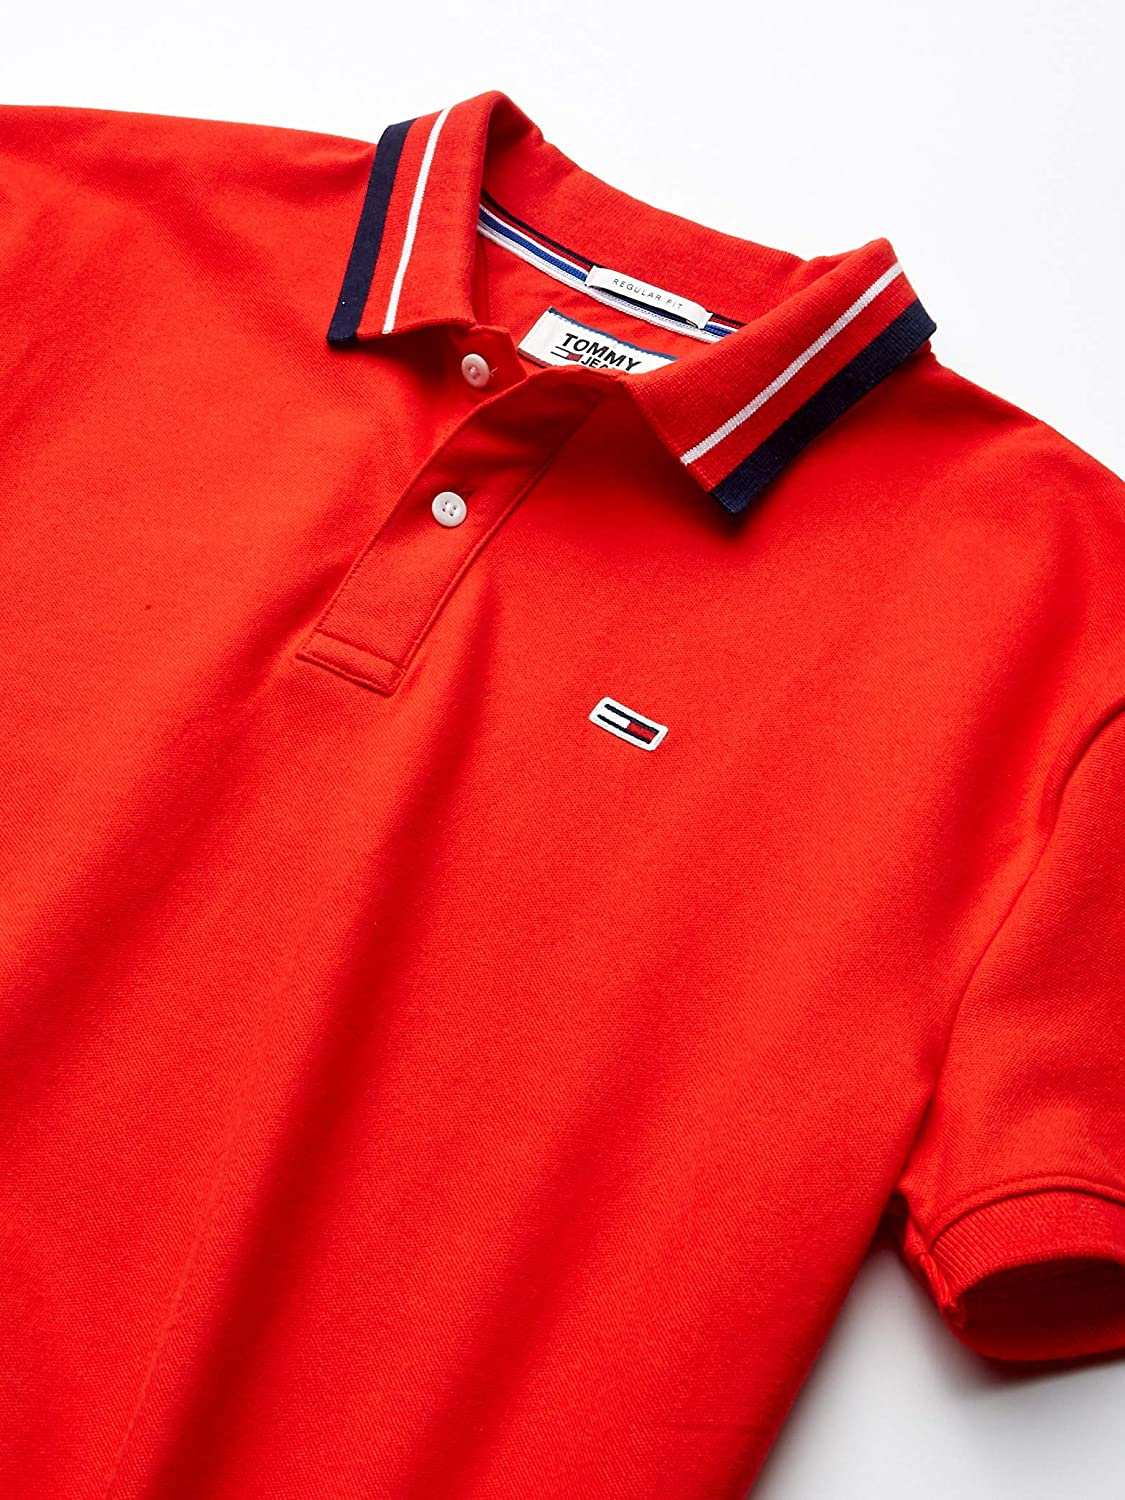 Tommy Hilfiger Mens Polo Shirt Classics Collection